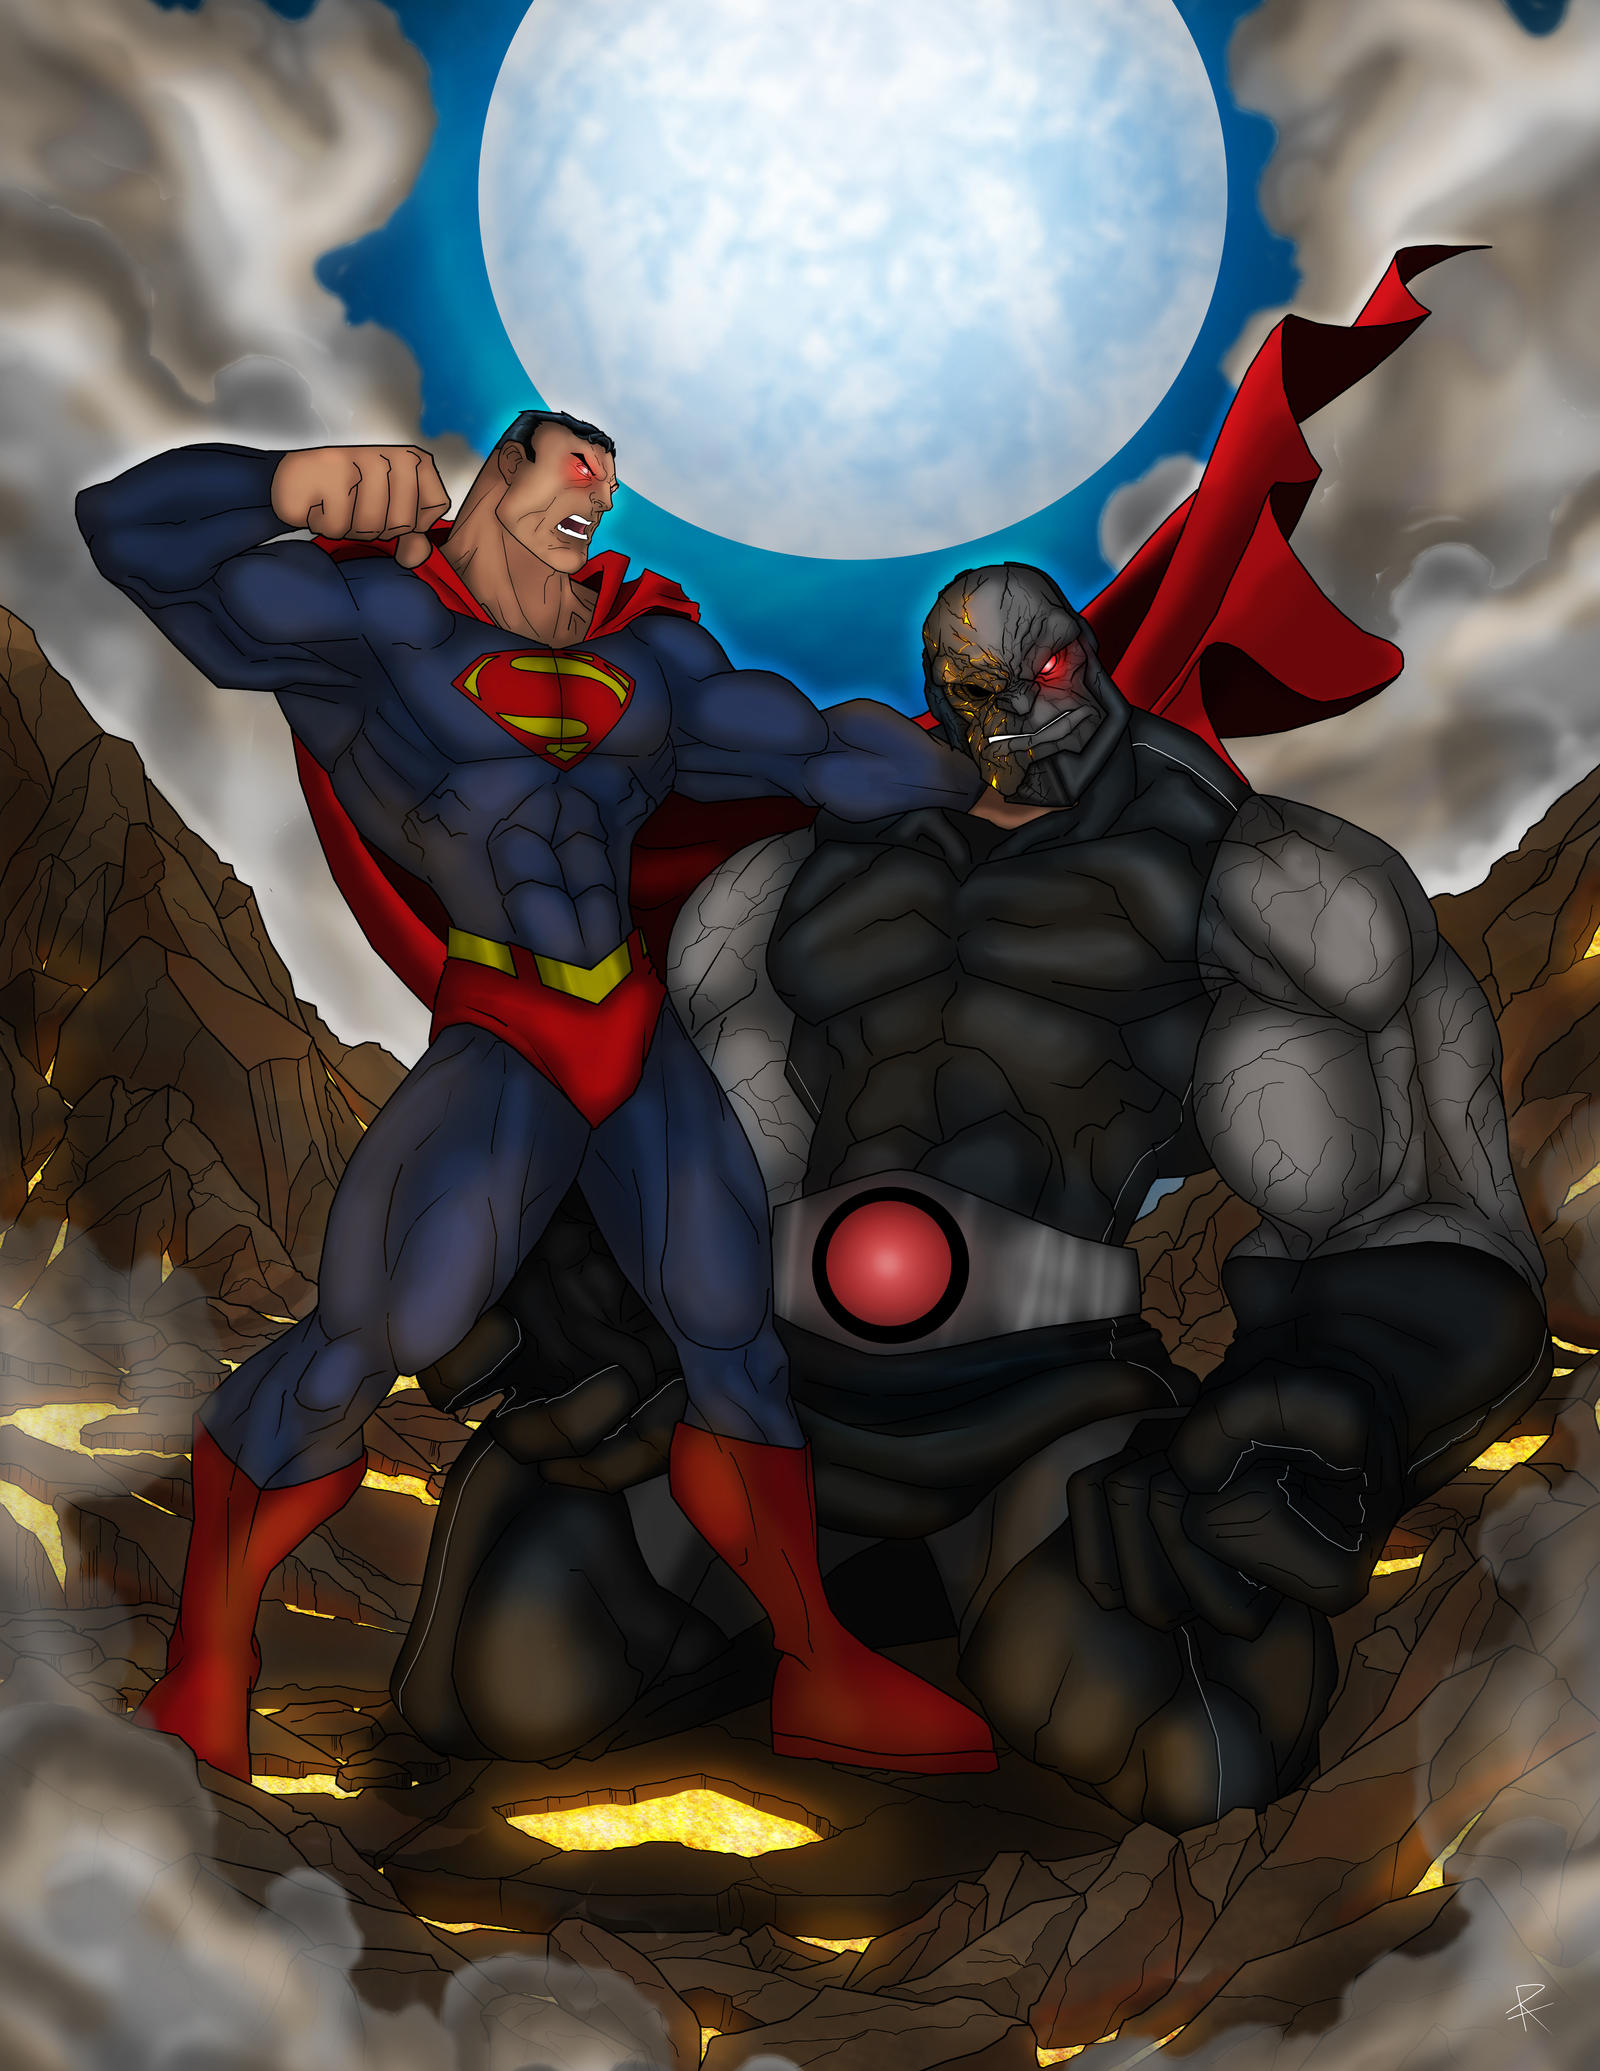 Superman Vs Darkseid Wallpaper Superman vs darkseid byHulk Vs Darkseid